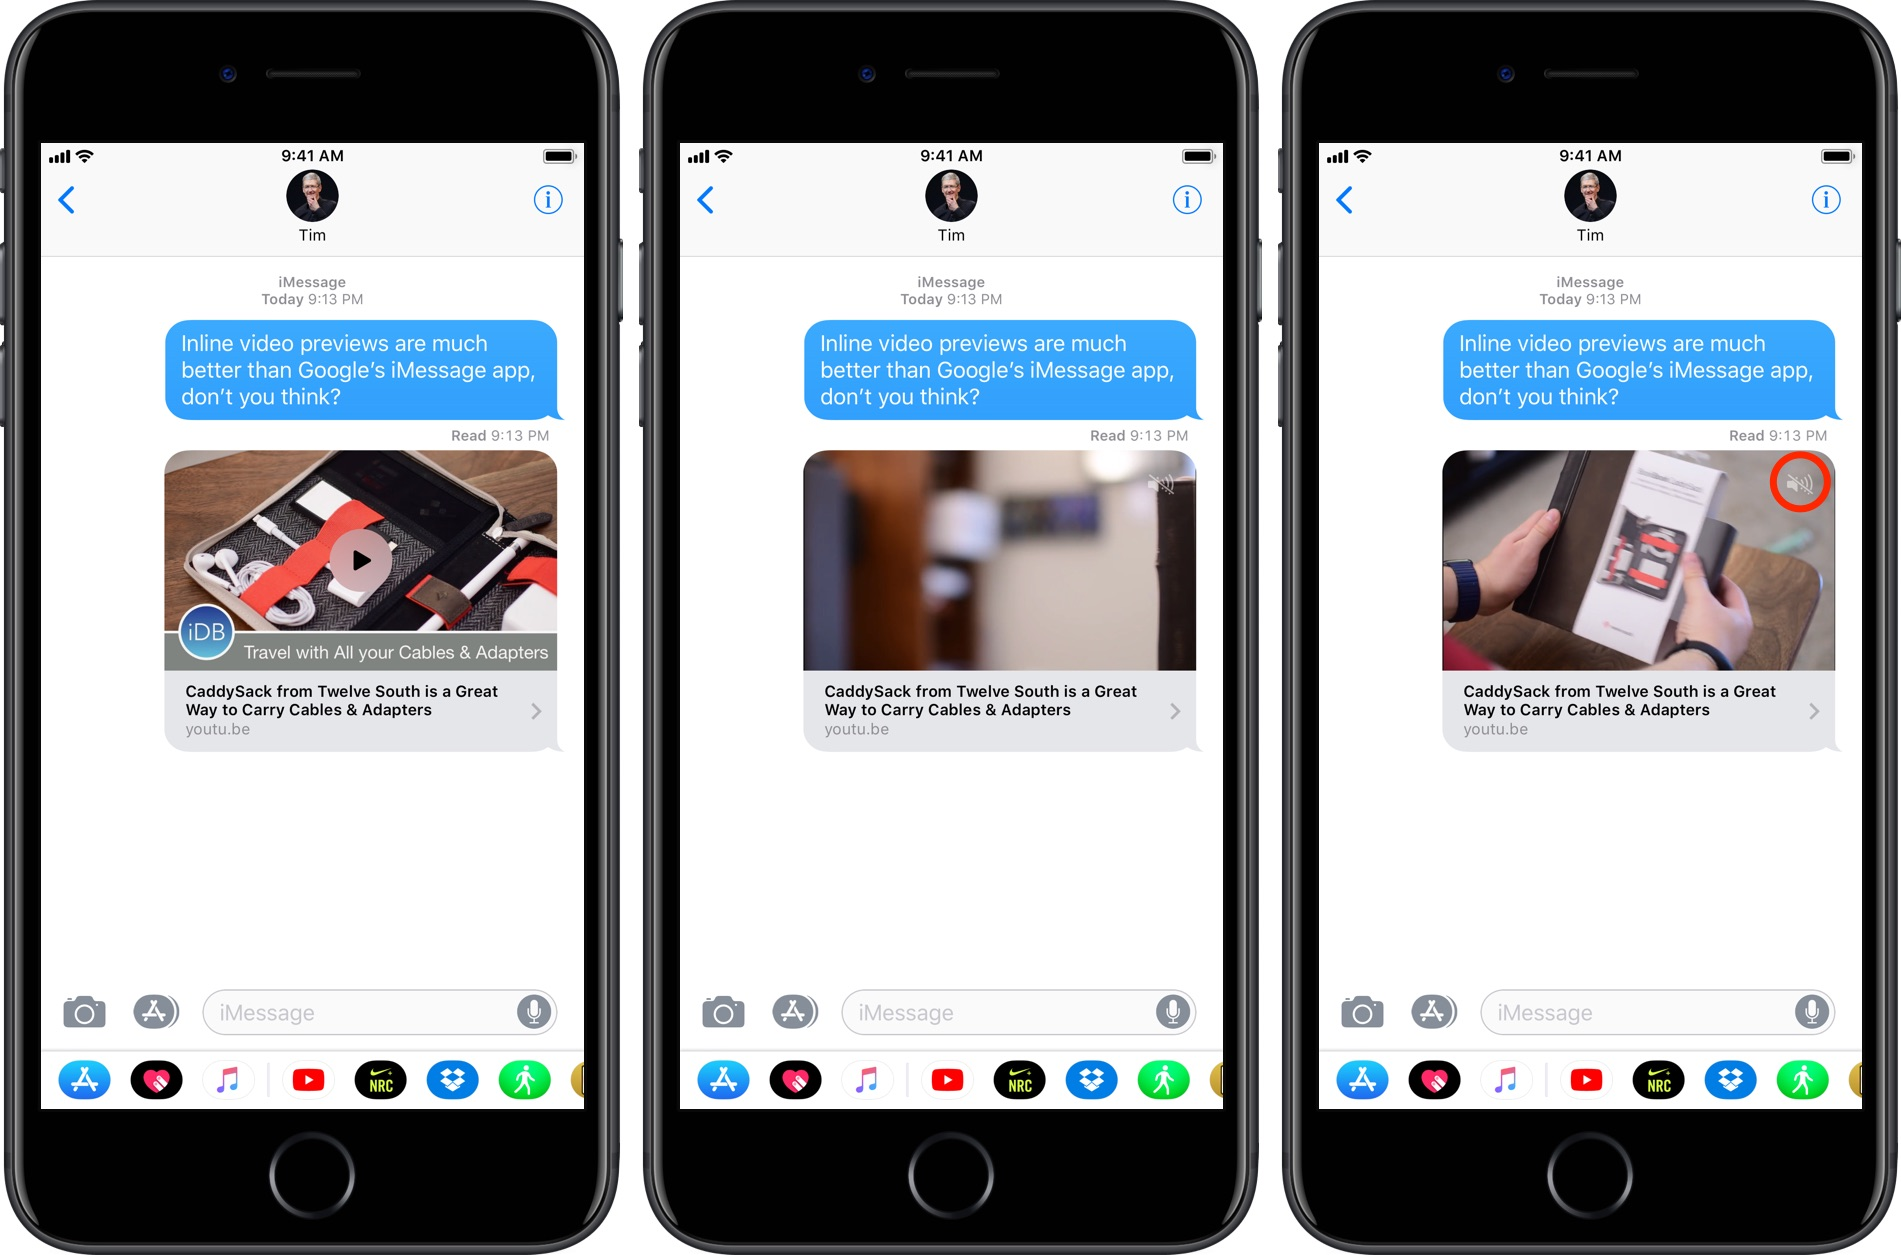 YouTube iMessage sharing